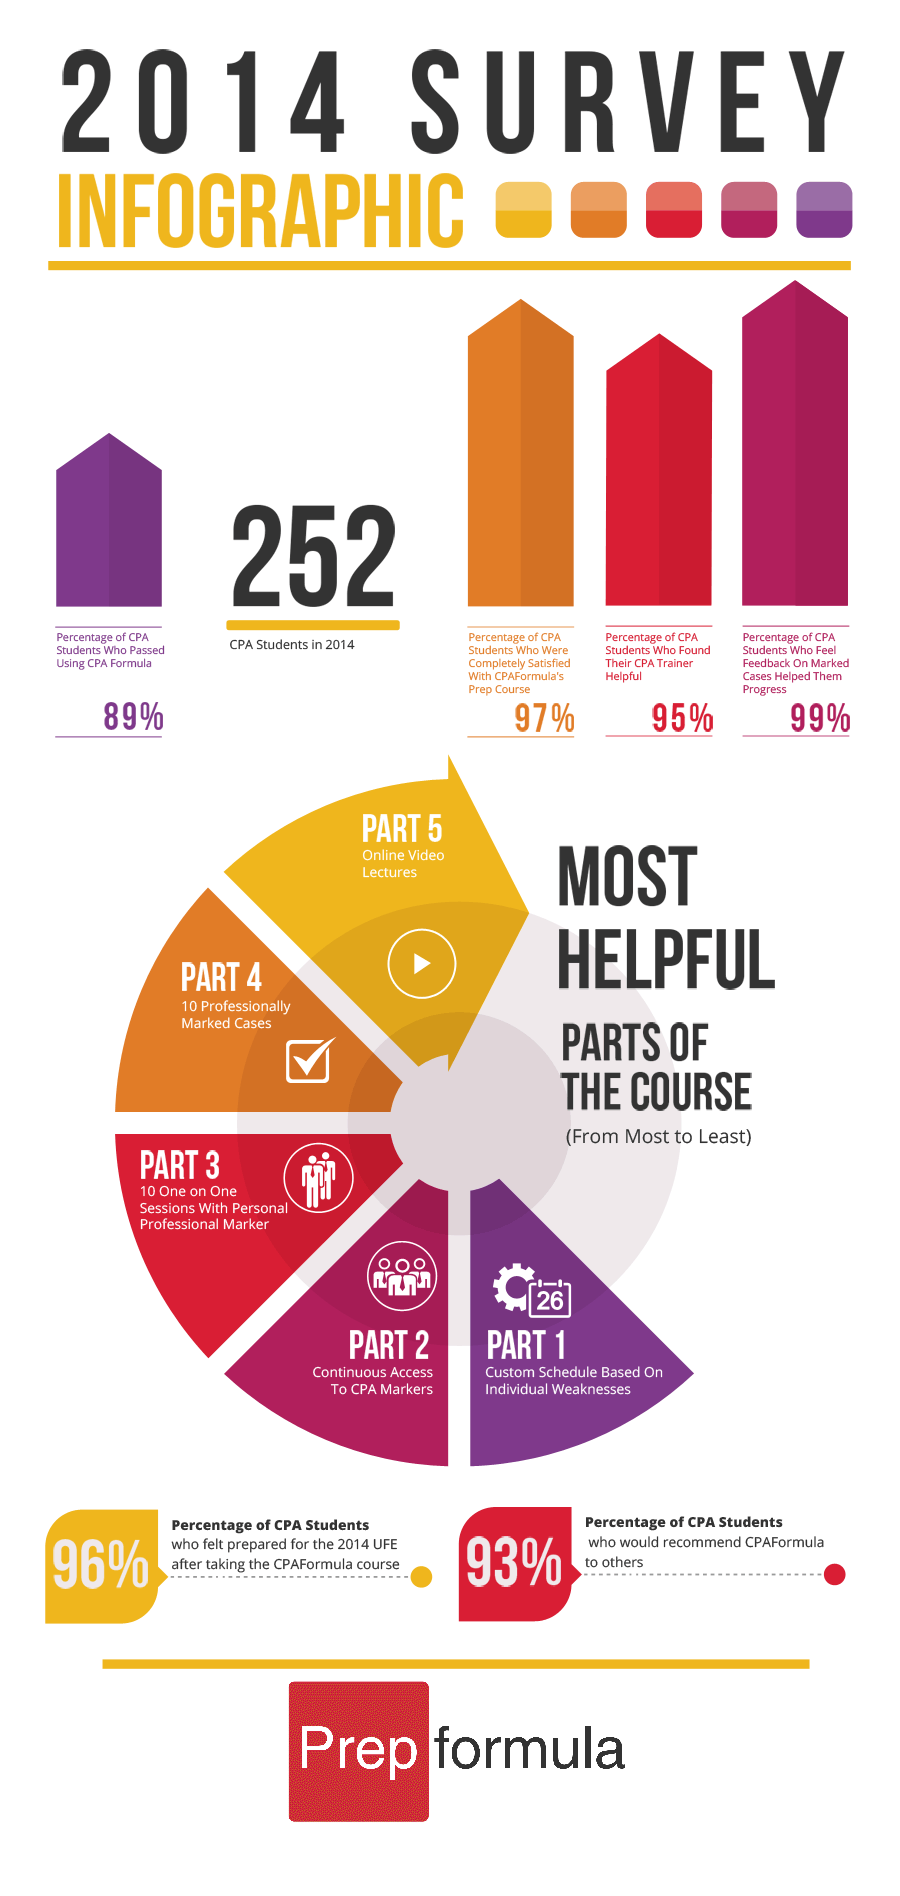 cpaformula 2014 survey results infographic